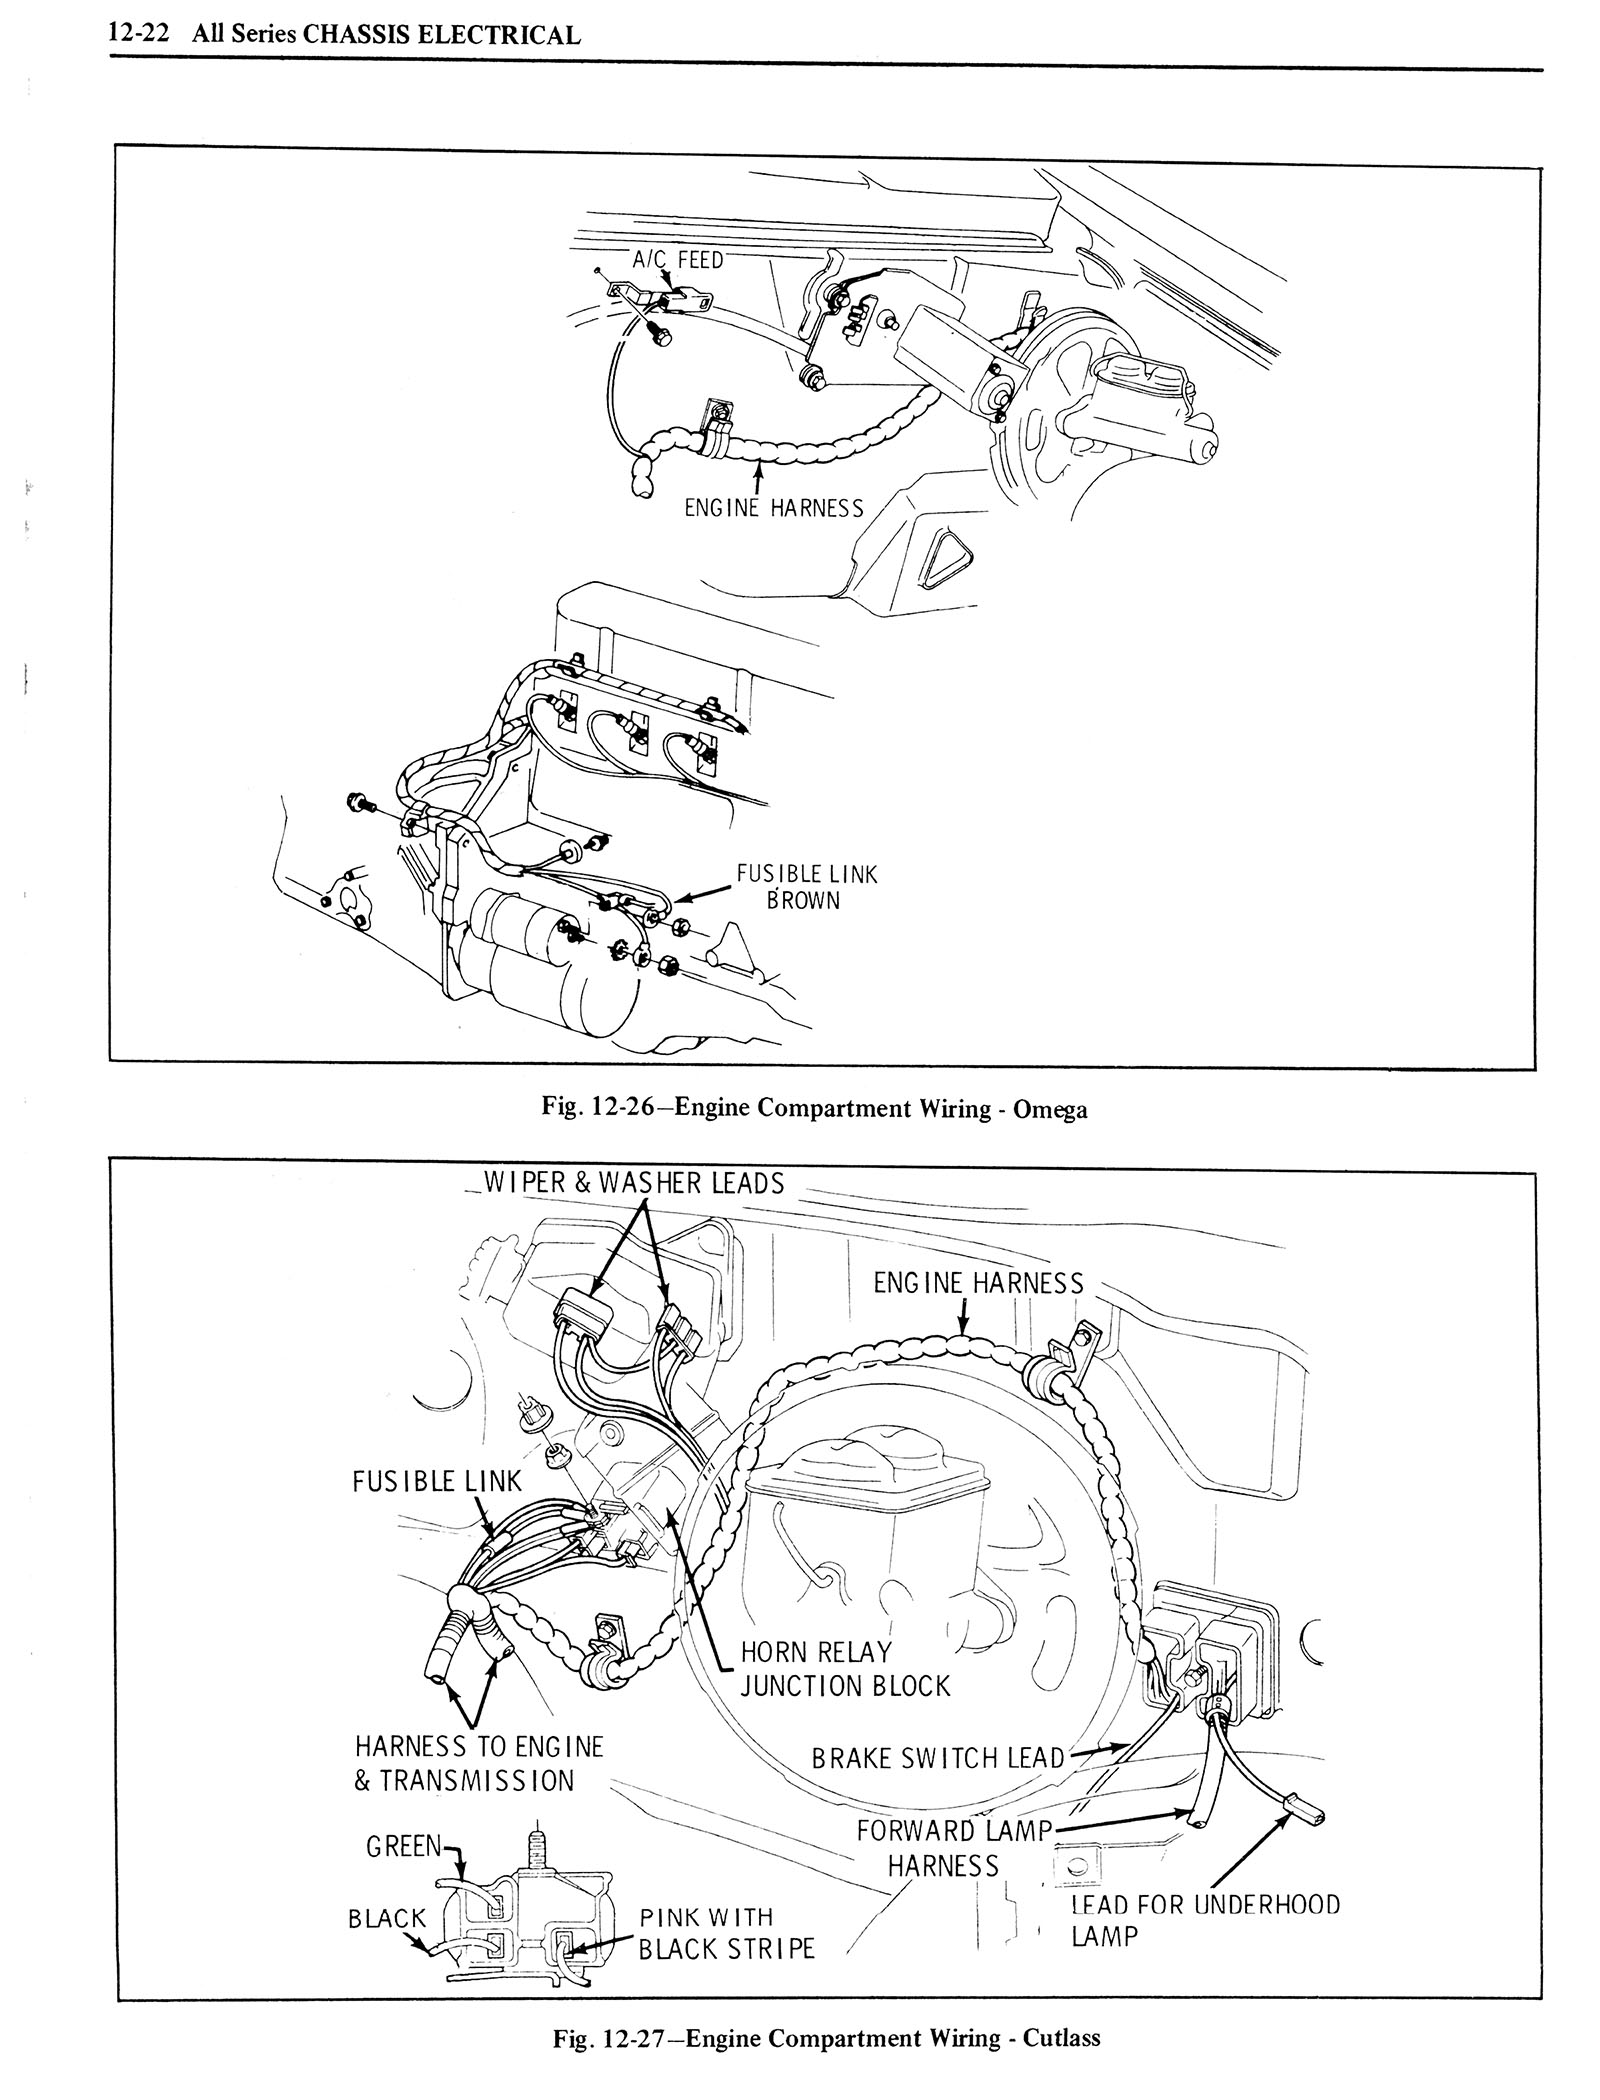 1976 Oldsmobile Service Manual page 1142 of 1390